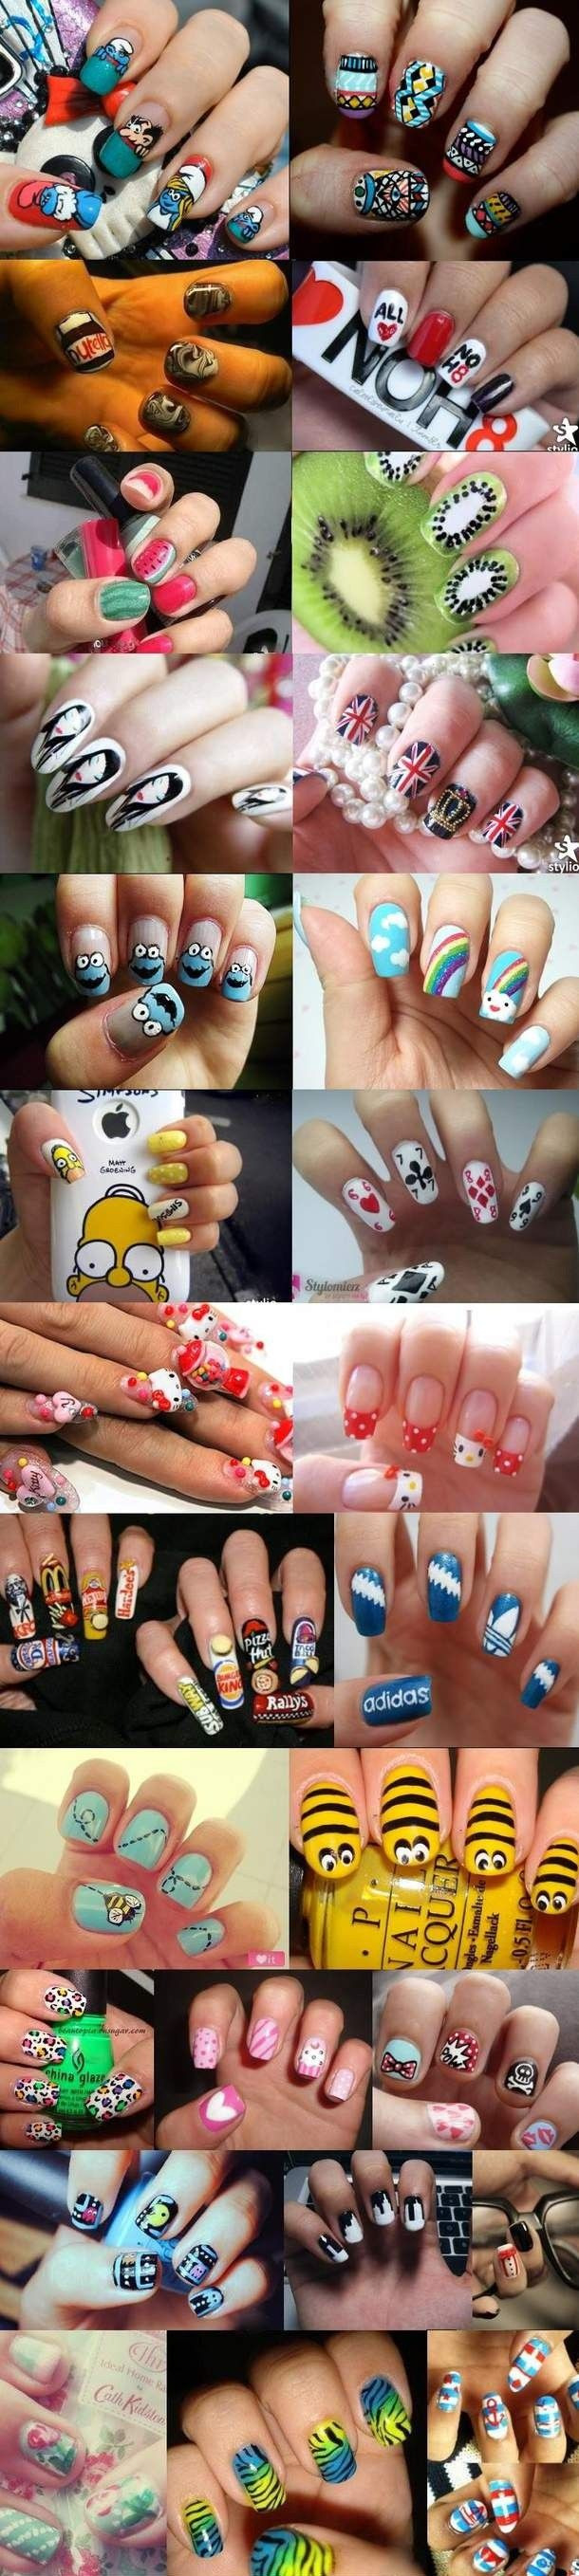 27 Cutest, Most Amazing Nail Arts <3 Love It!